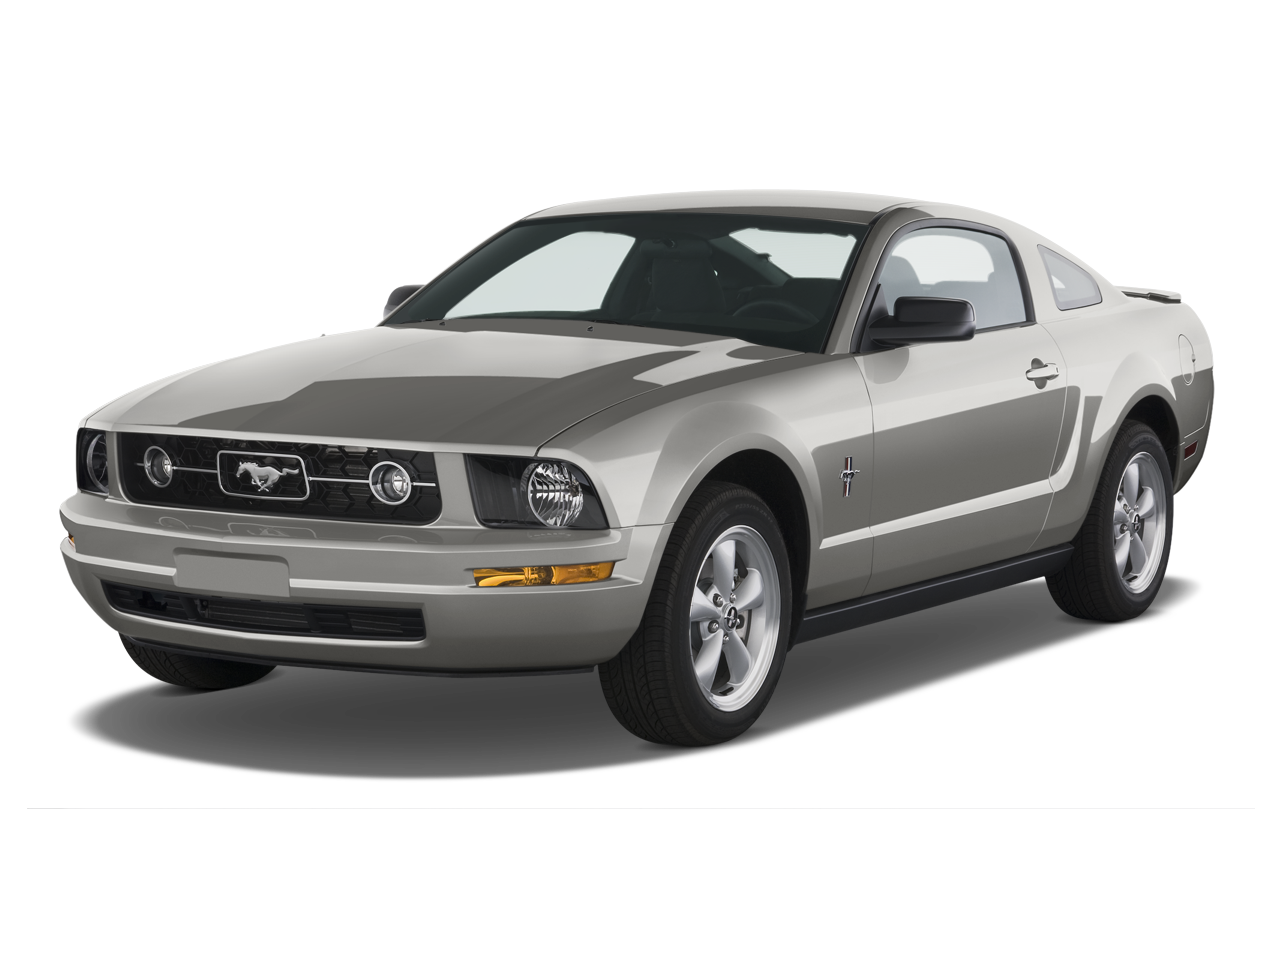 2009 5 ford mustang iacocca silver 45th anniversary. Black Bedroom Furniture Sets. Home Design Ideas